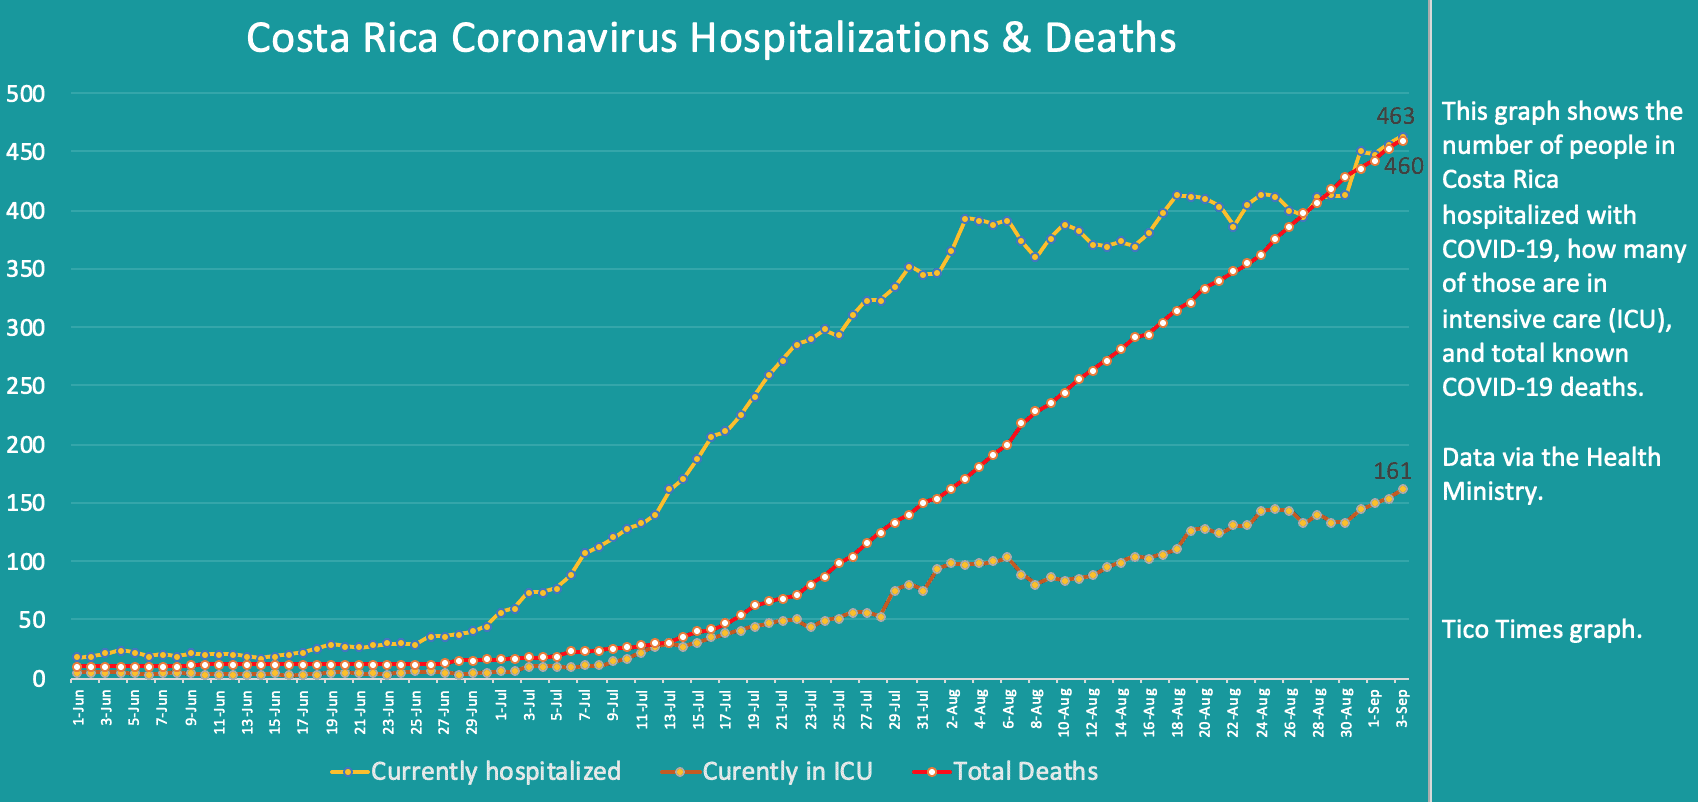 Costa Rica coronavirus hospitalizations and deaths on September 3, 2020